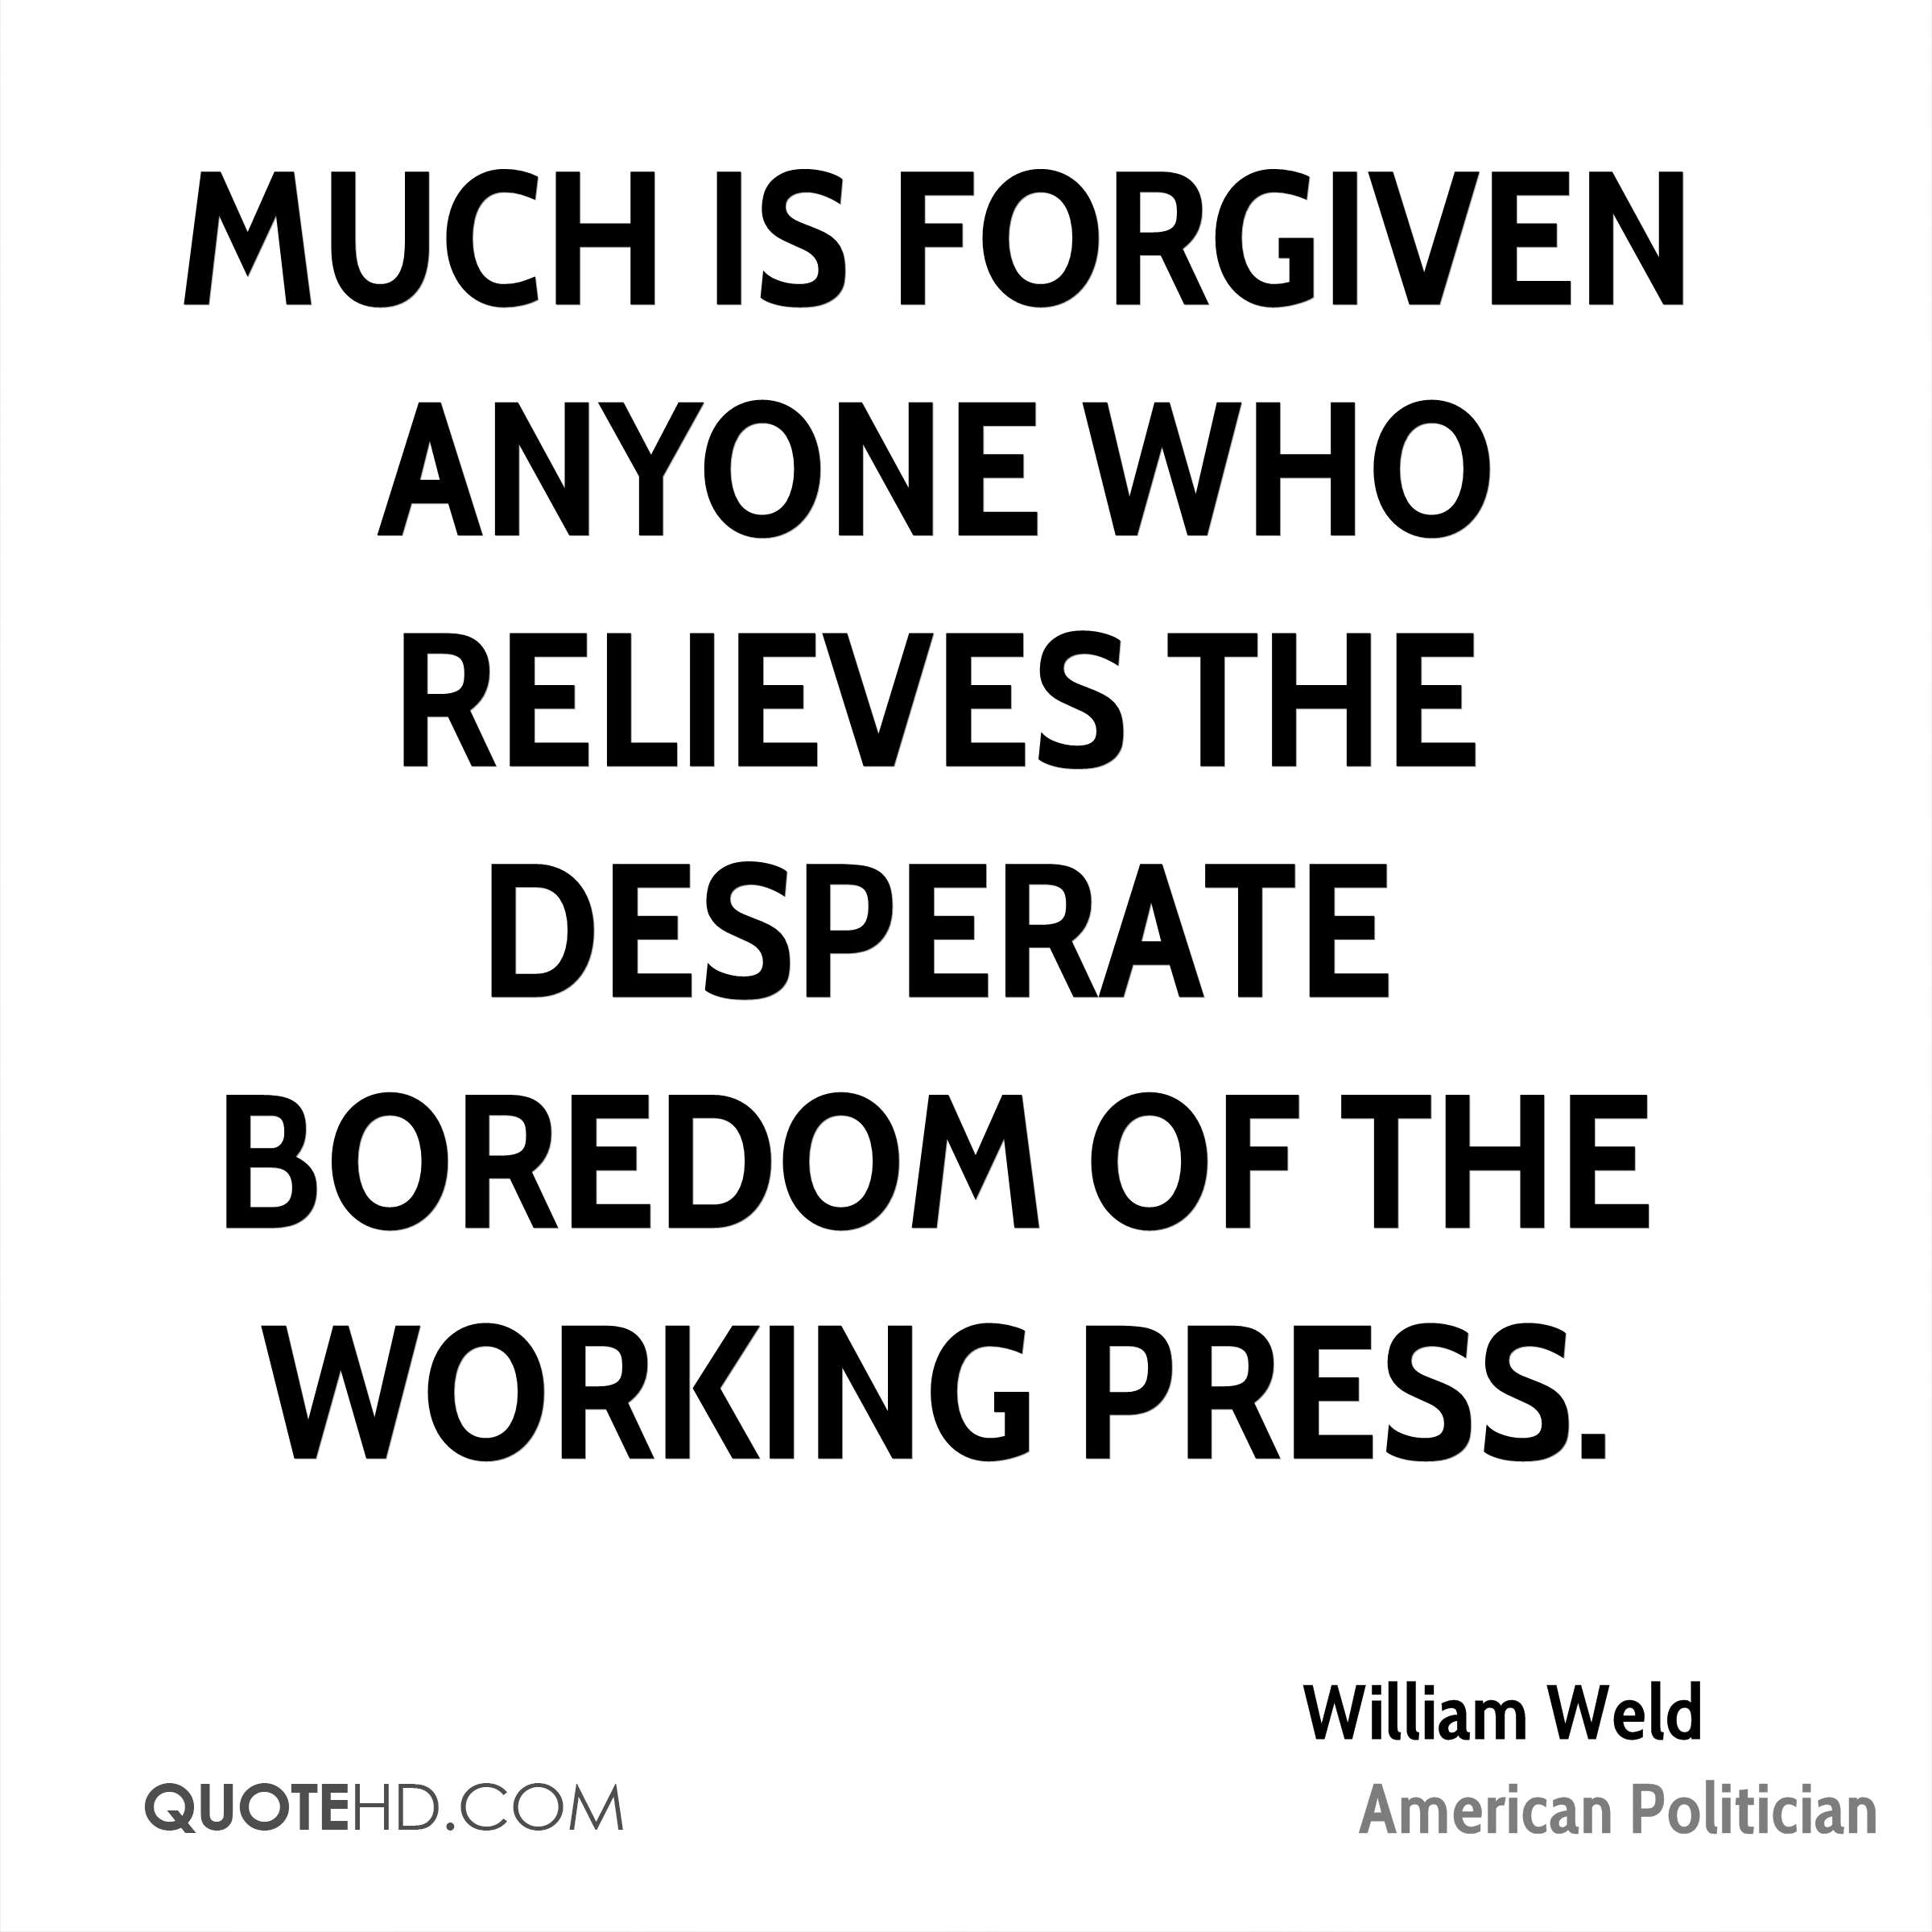 Much is forgiven anyone who relieves the desperate boredom of the working press.